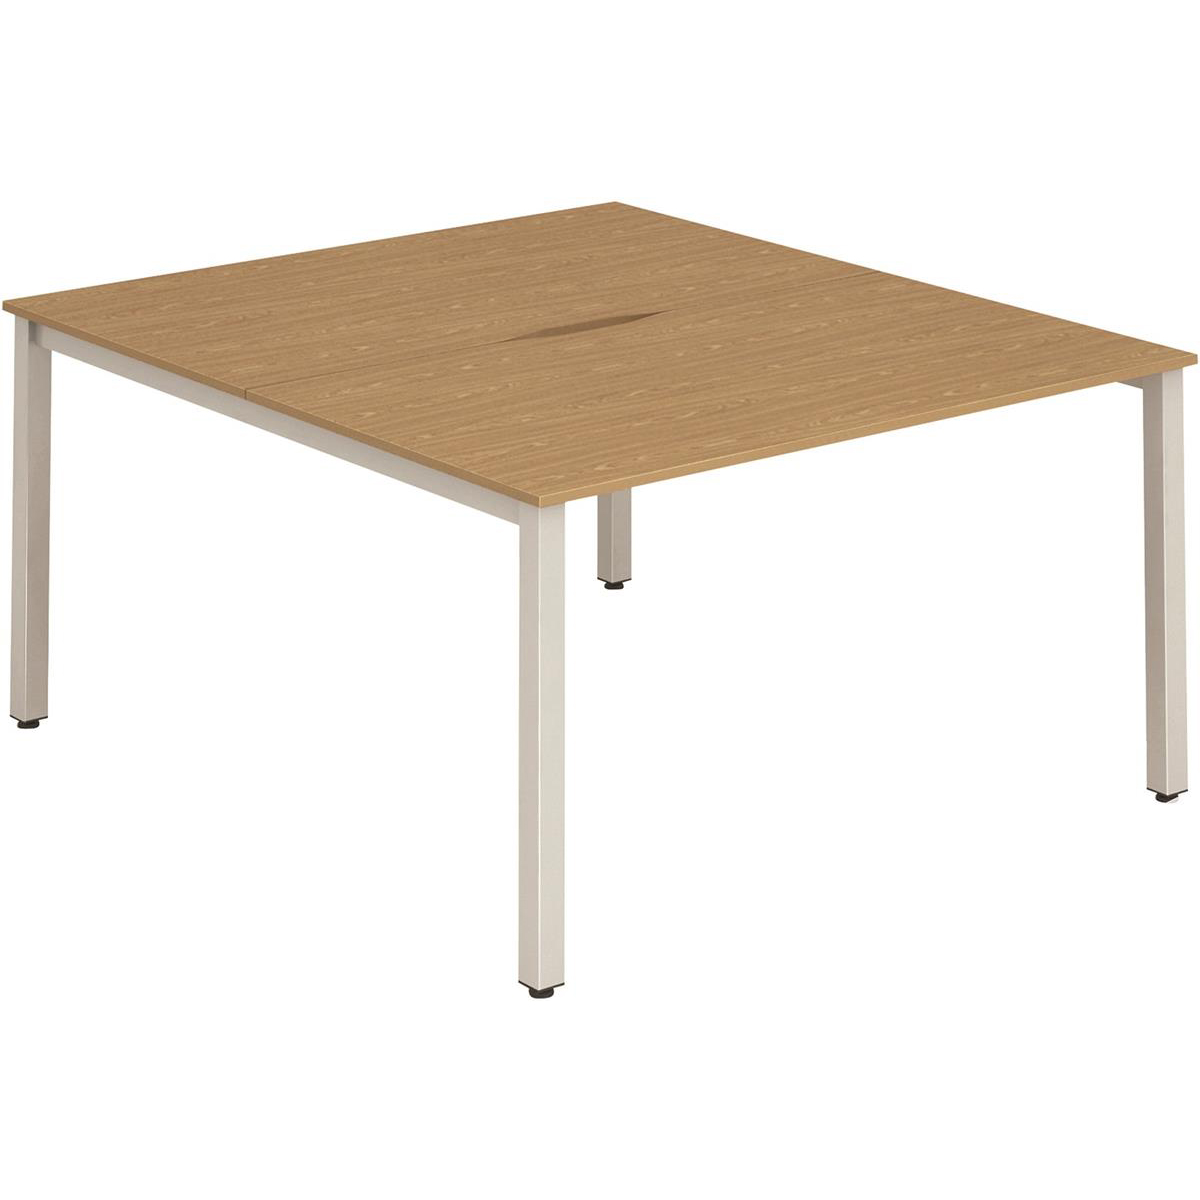 Trexus Bench Desk 2 Person Back to Back Configuration Silver Leg 1200x1600mm Oak Ref BE178